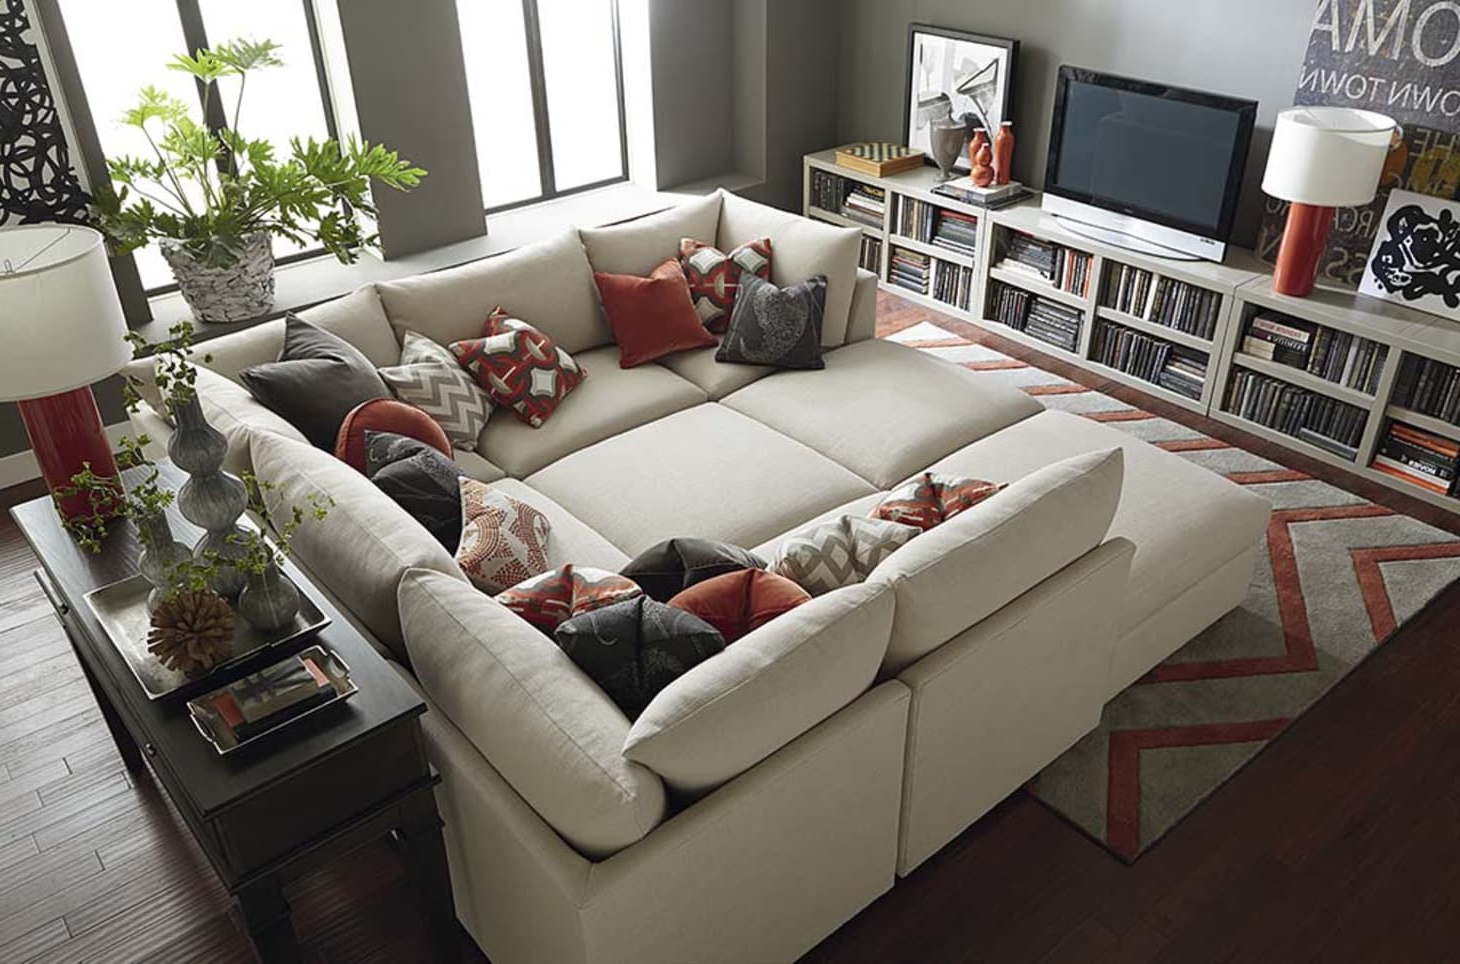 Sofas Modulares Ikea S1du the Best Modular sofas Annual Guide Apartment therapy